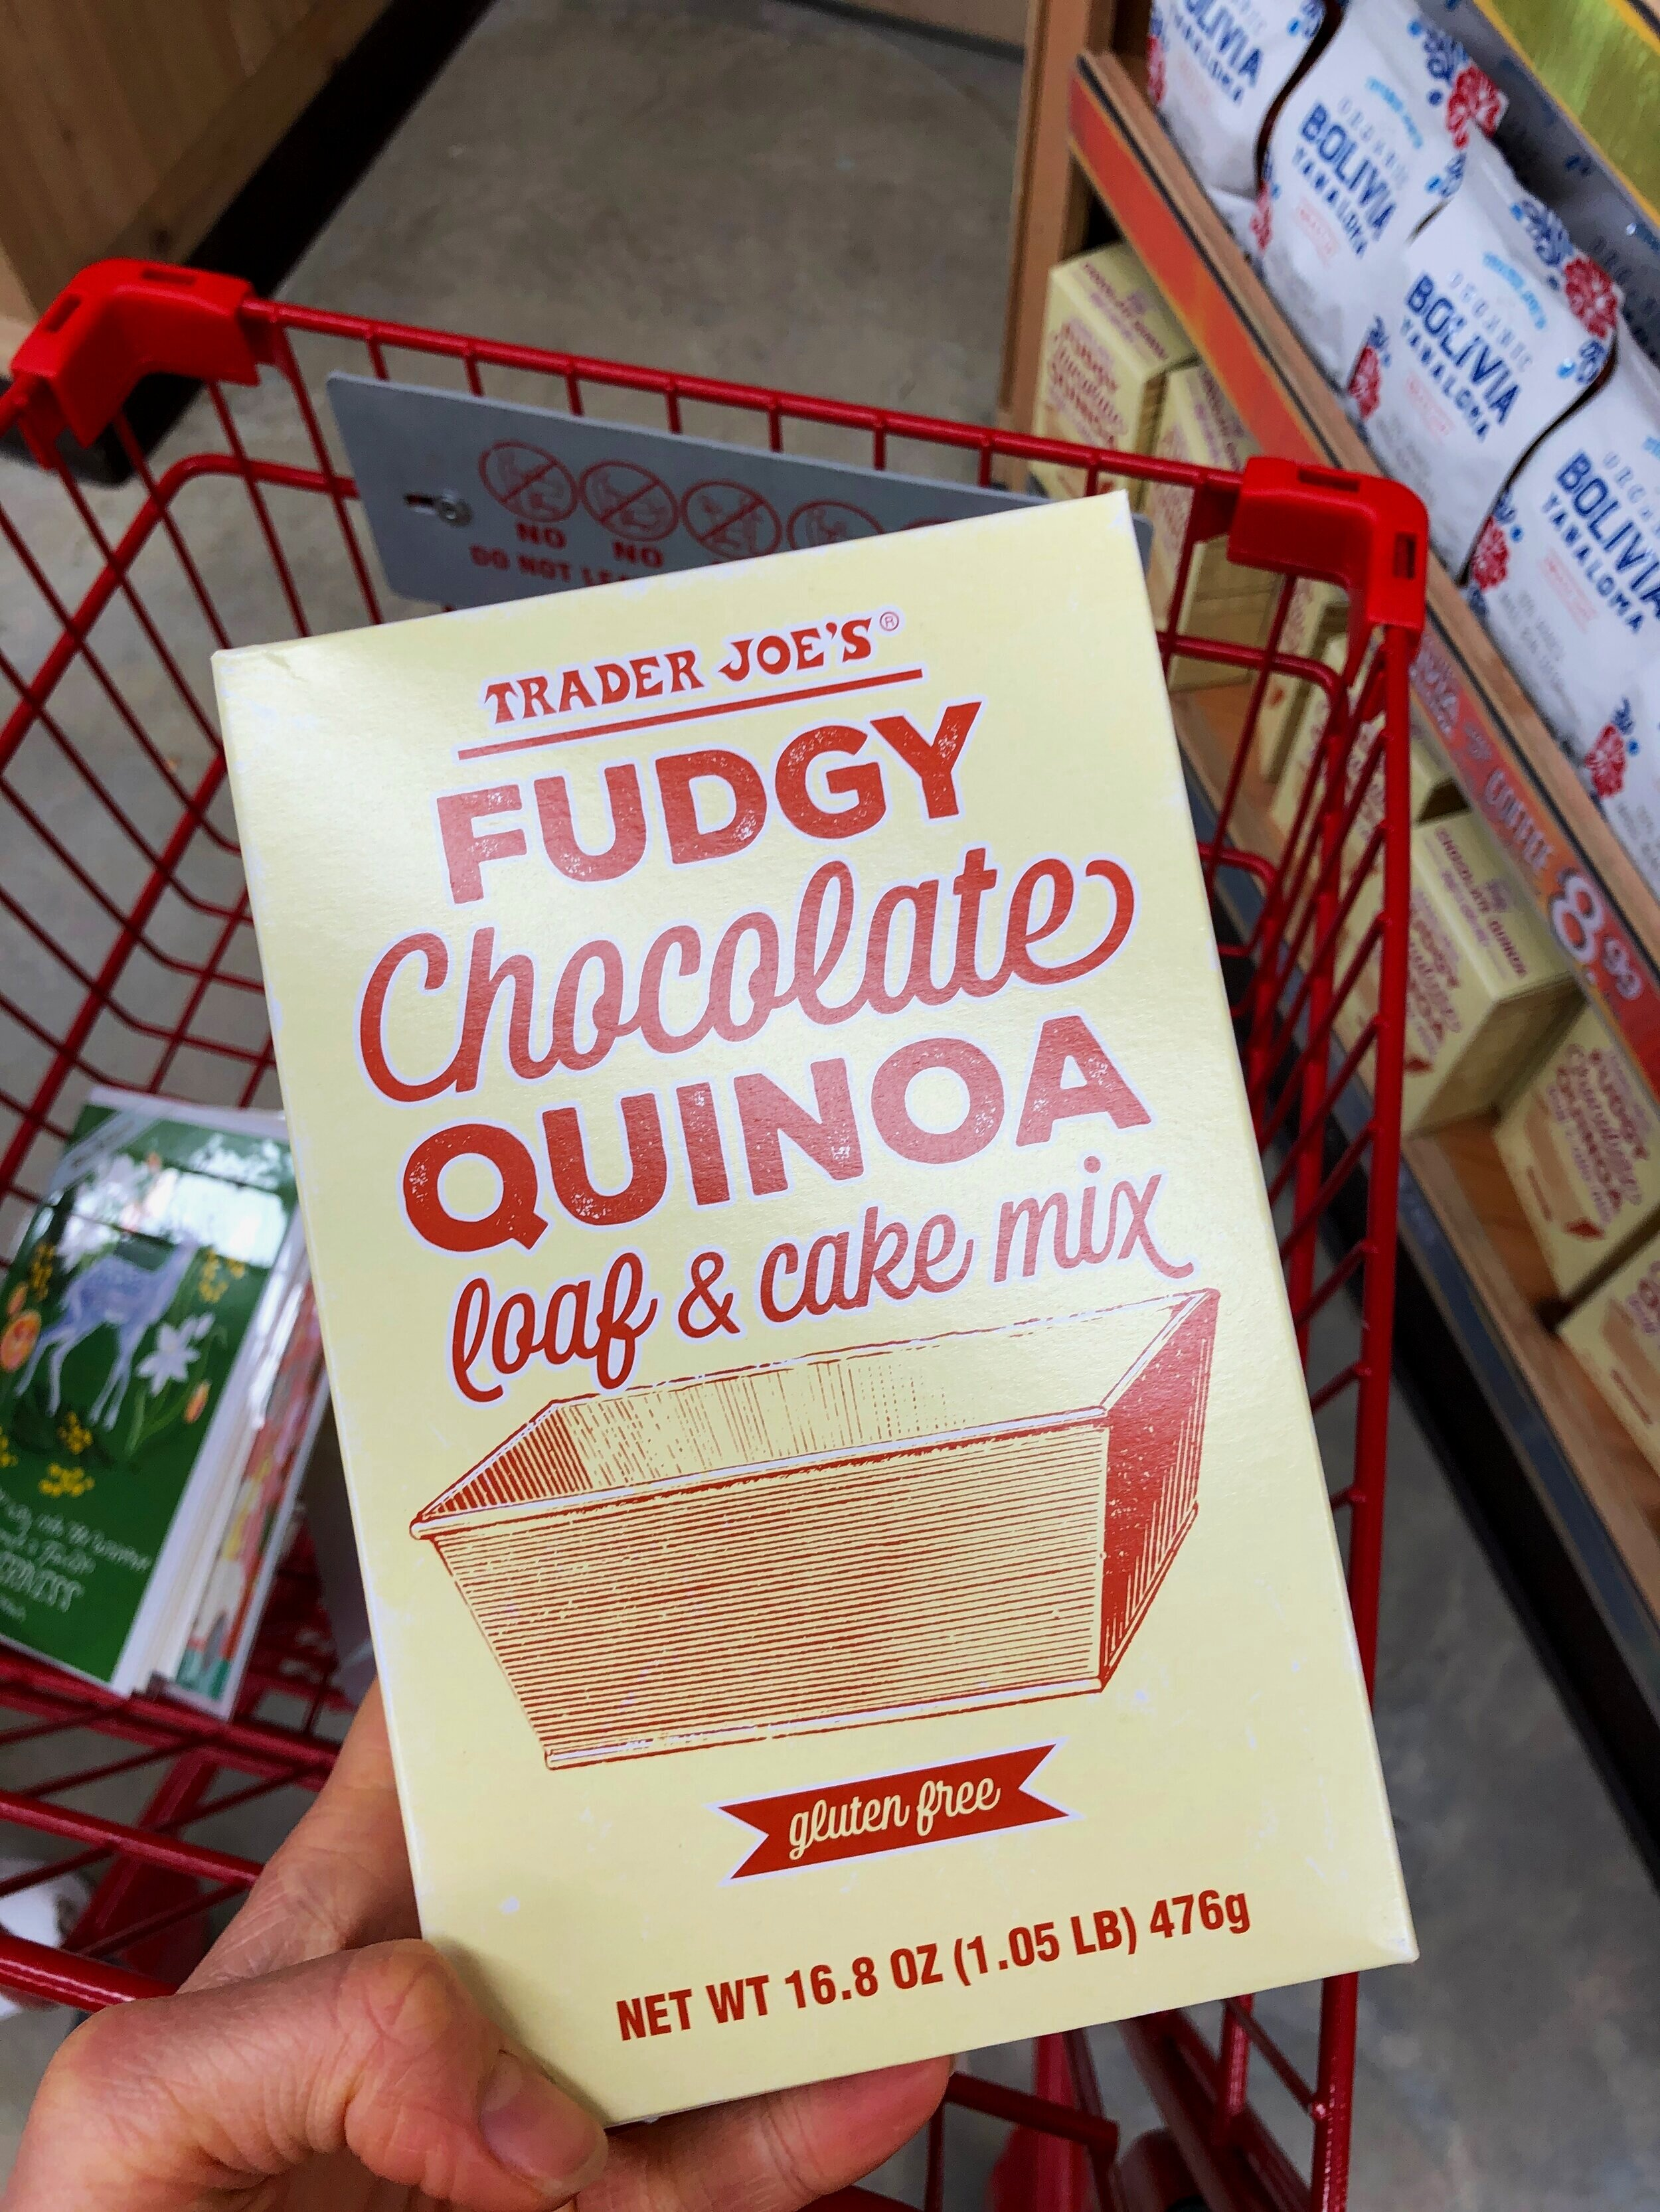 The Trader Joe's Fudgy Chocolate Quinoa Loaf & Cake Mix. ||Photo credit to Serena Tuomi